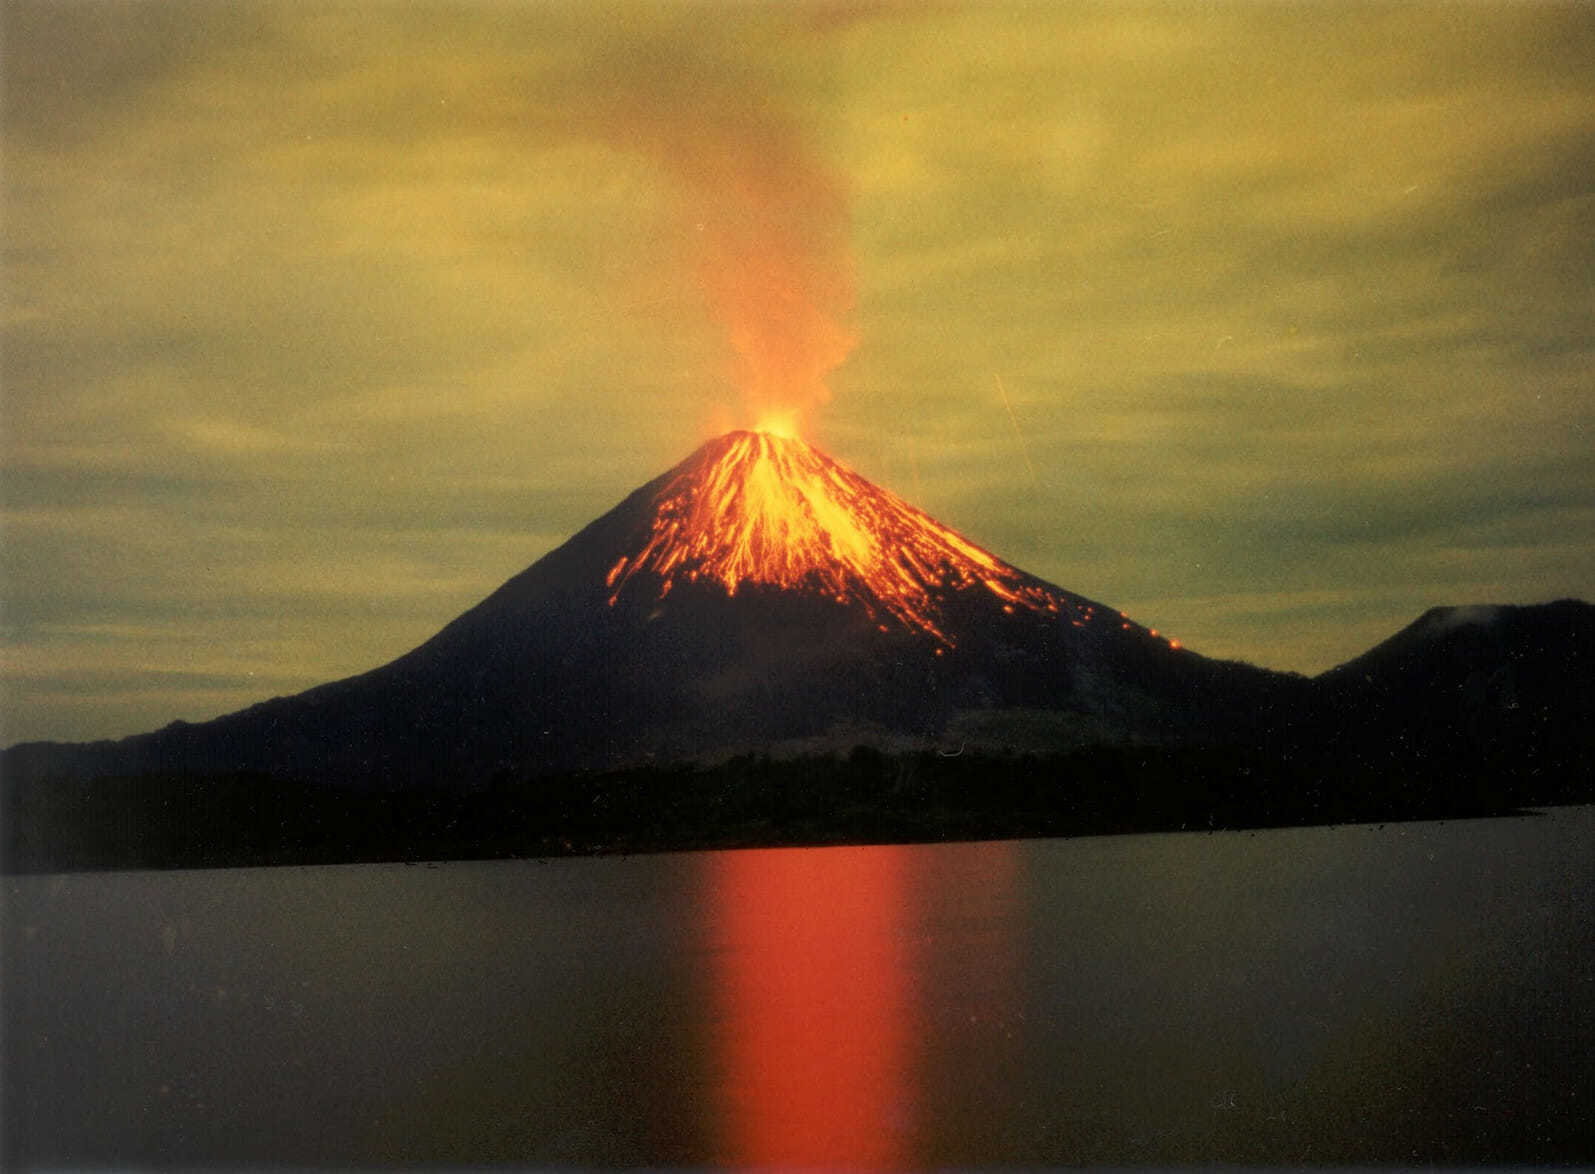 Pictures of a composite volcano Company Search Results - Reuters